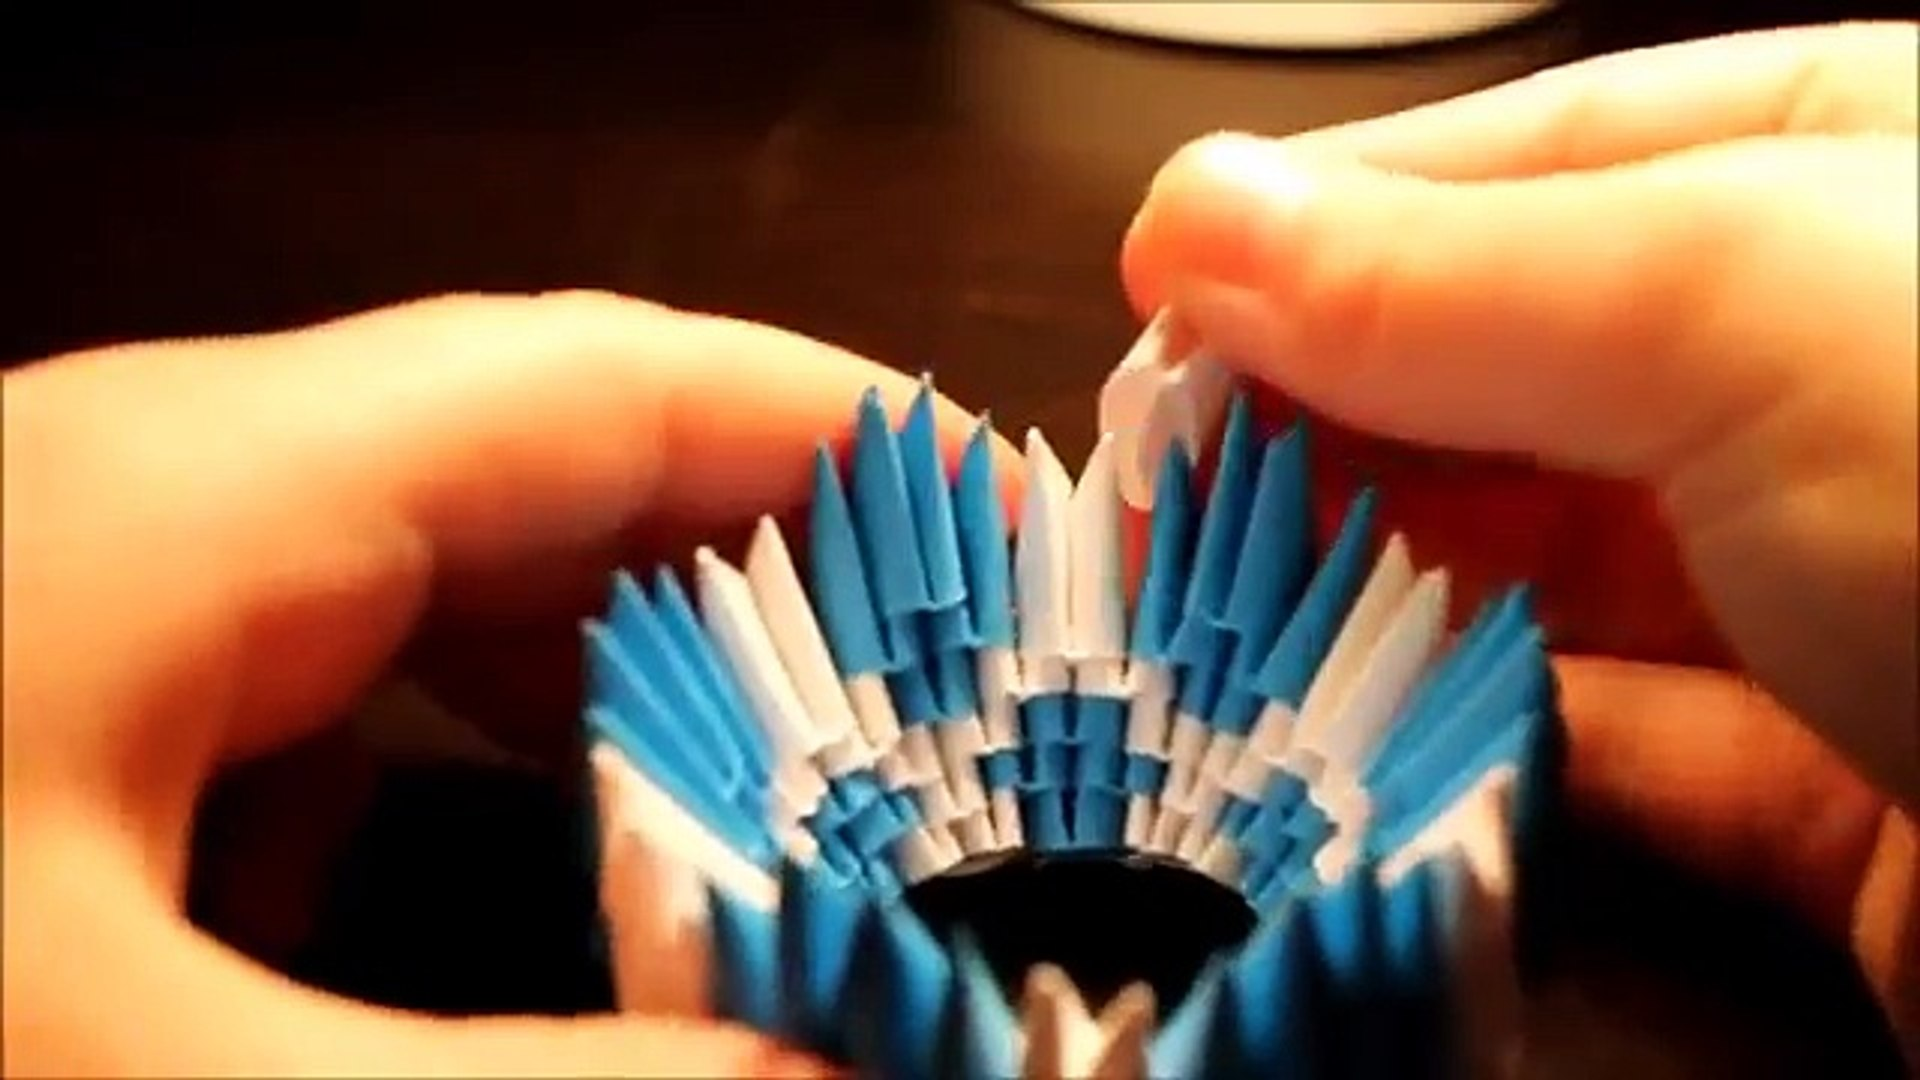 3D Origami Pokeball Tutorial - YouTube … | Origami crafts, 3d ... | 1080x1920